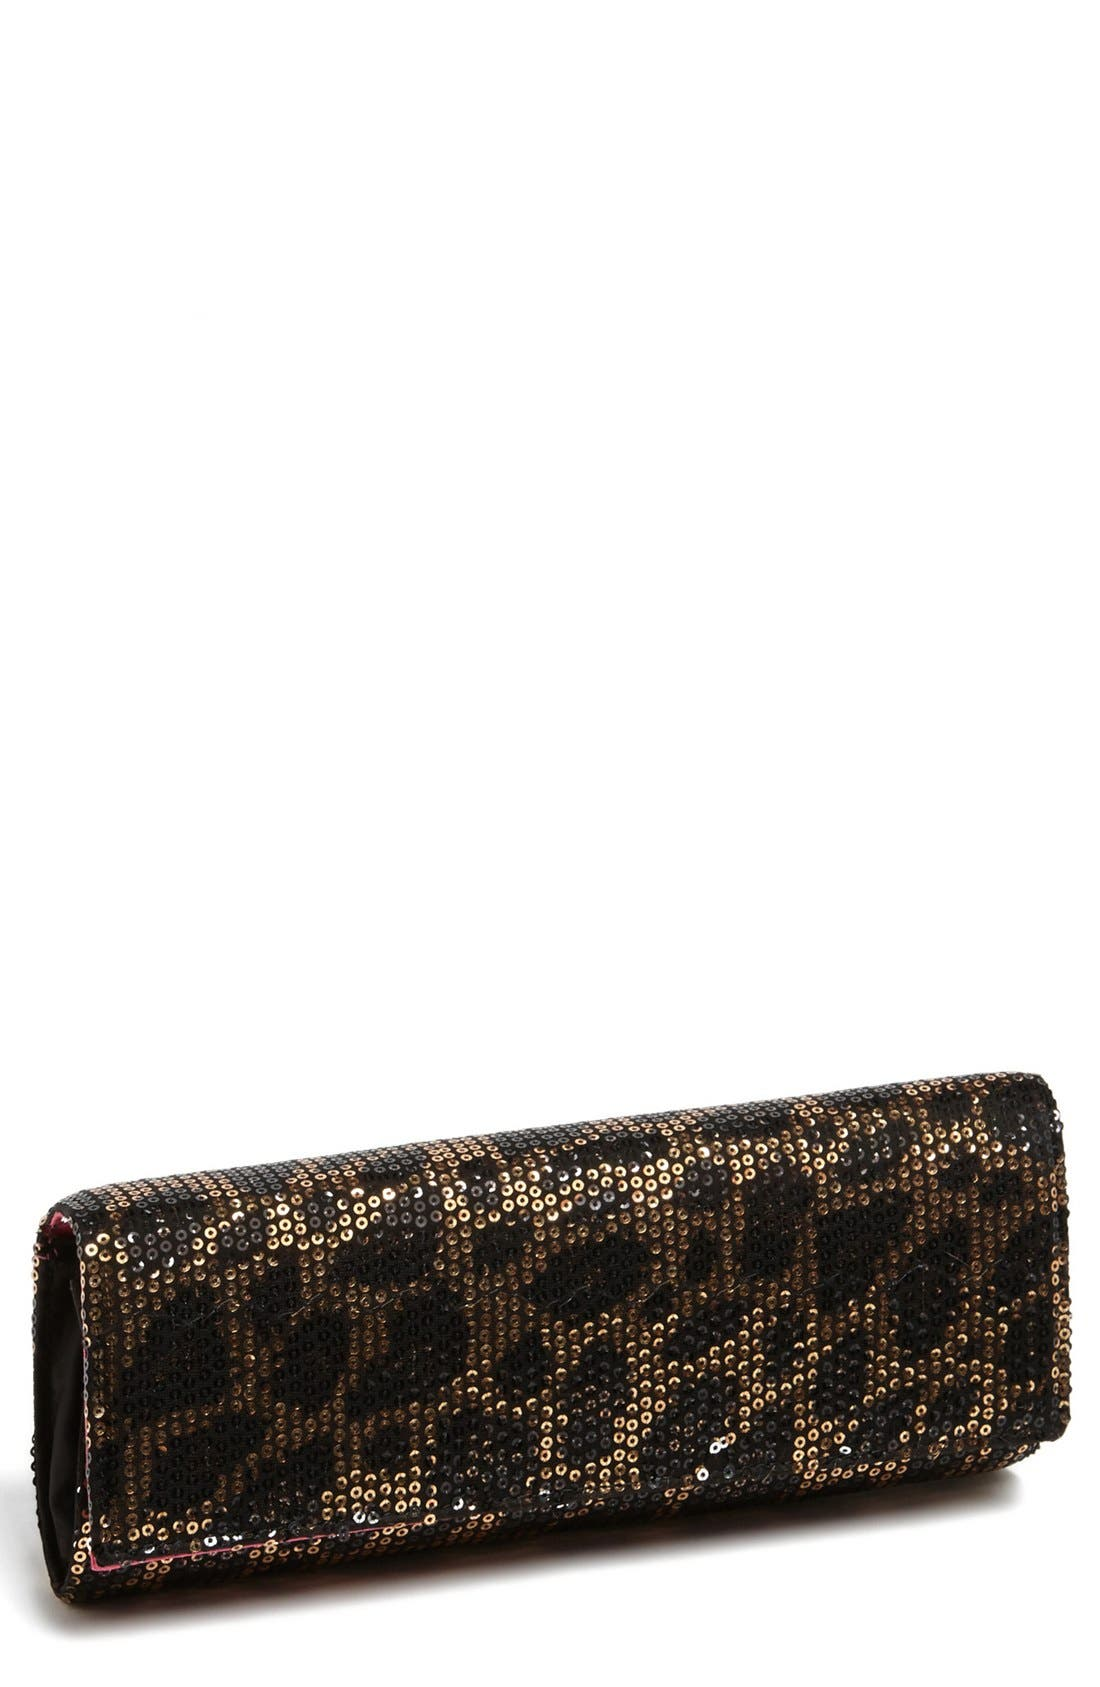 Alternate Image 1 Selected - Betsey Johnson Sequin Leopard Clutch